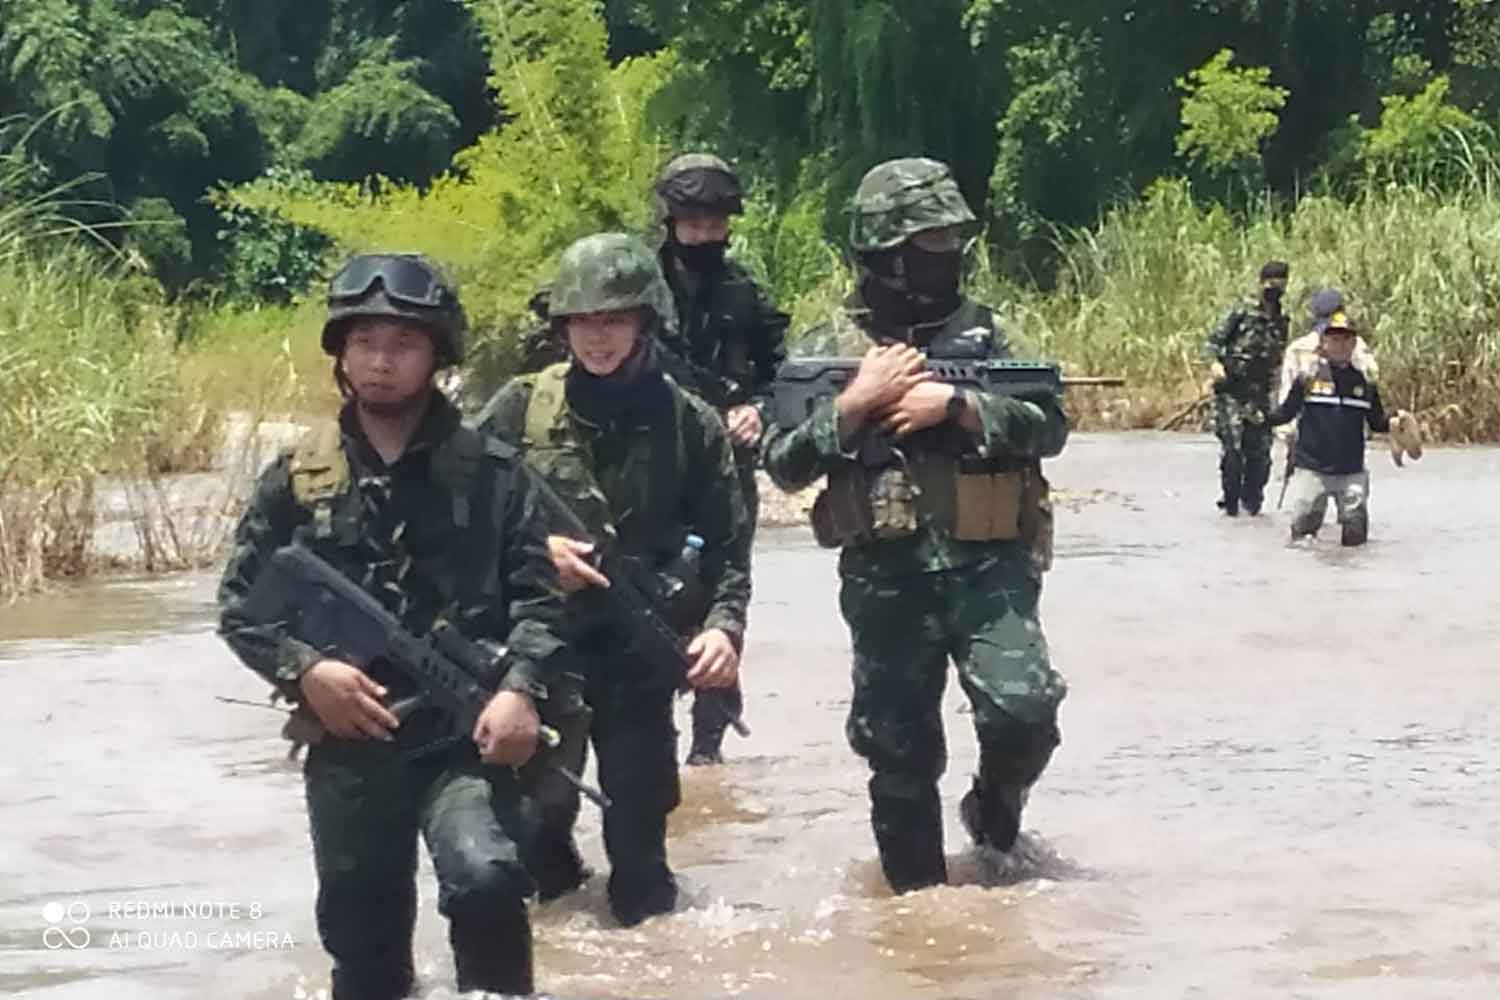 Security authorities patrol the Moei River in Tak province to prevent illegal immigration. ASSAWIN PINITWONG